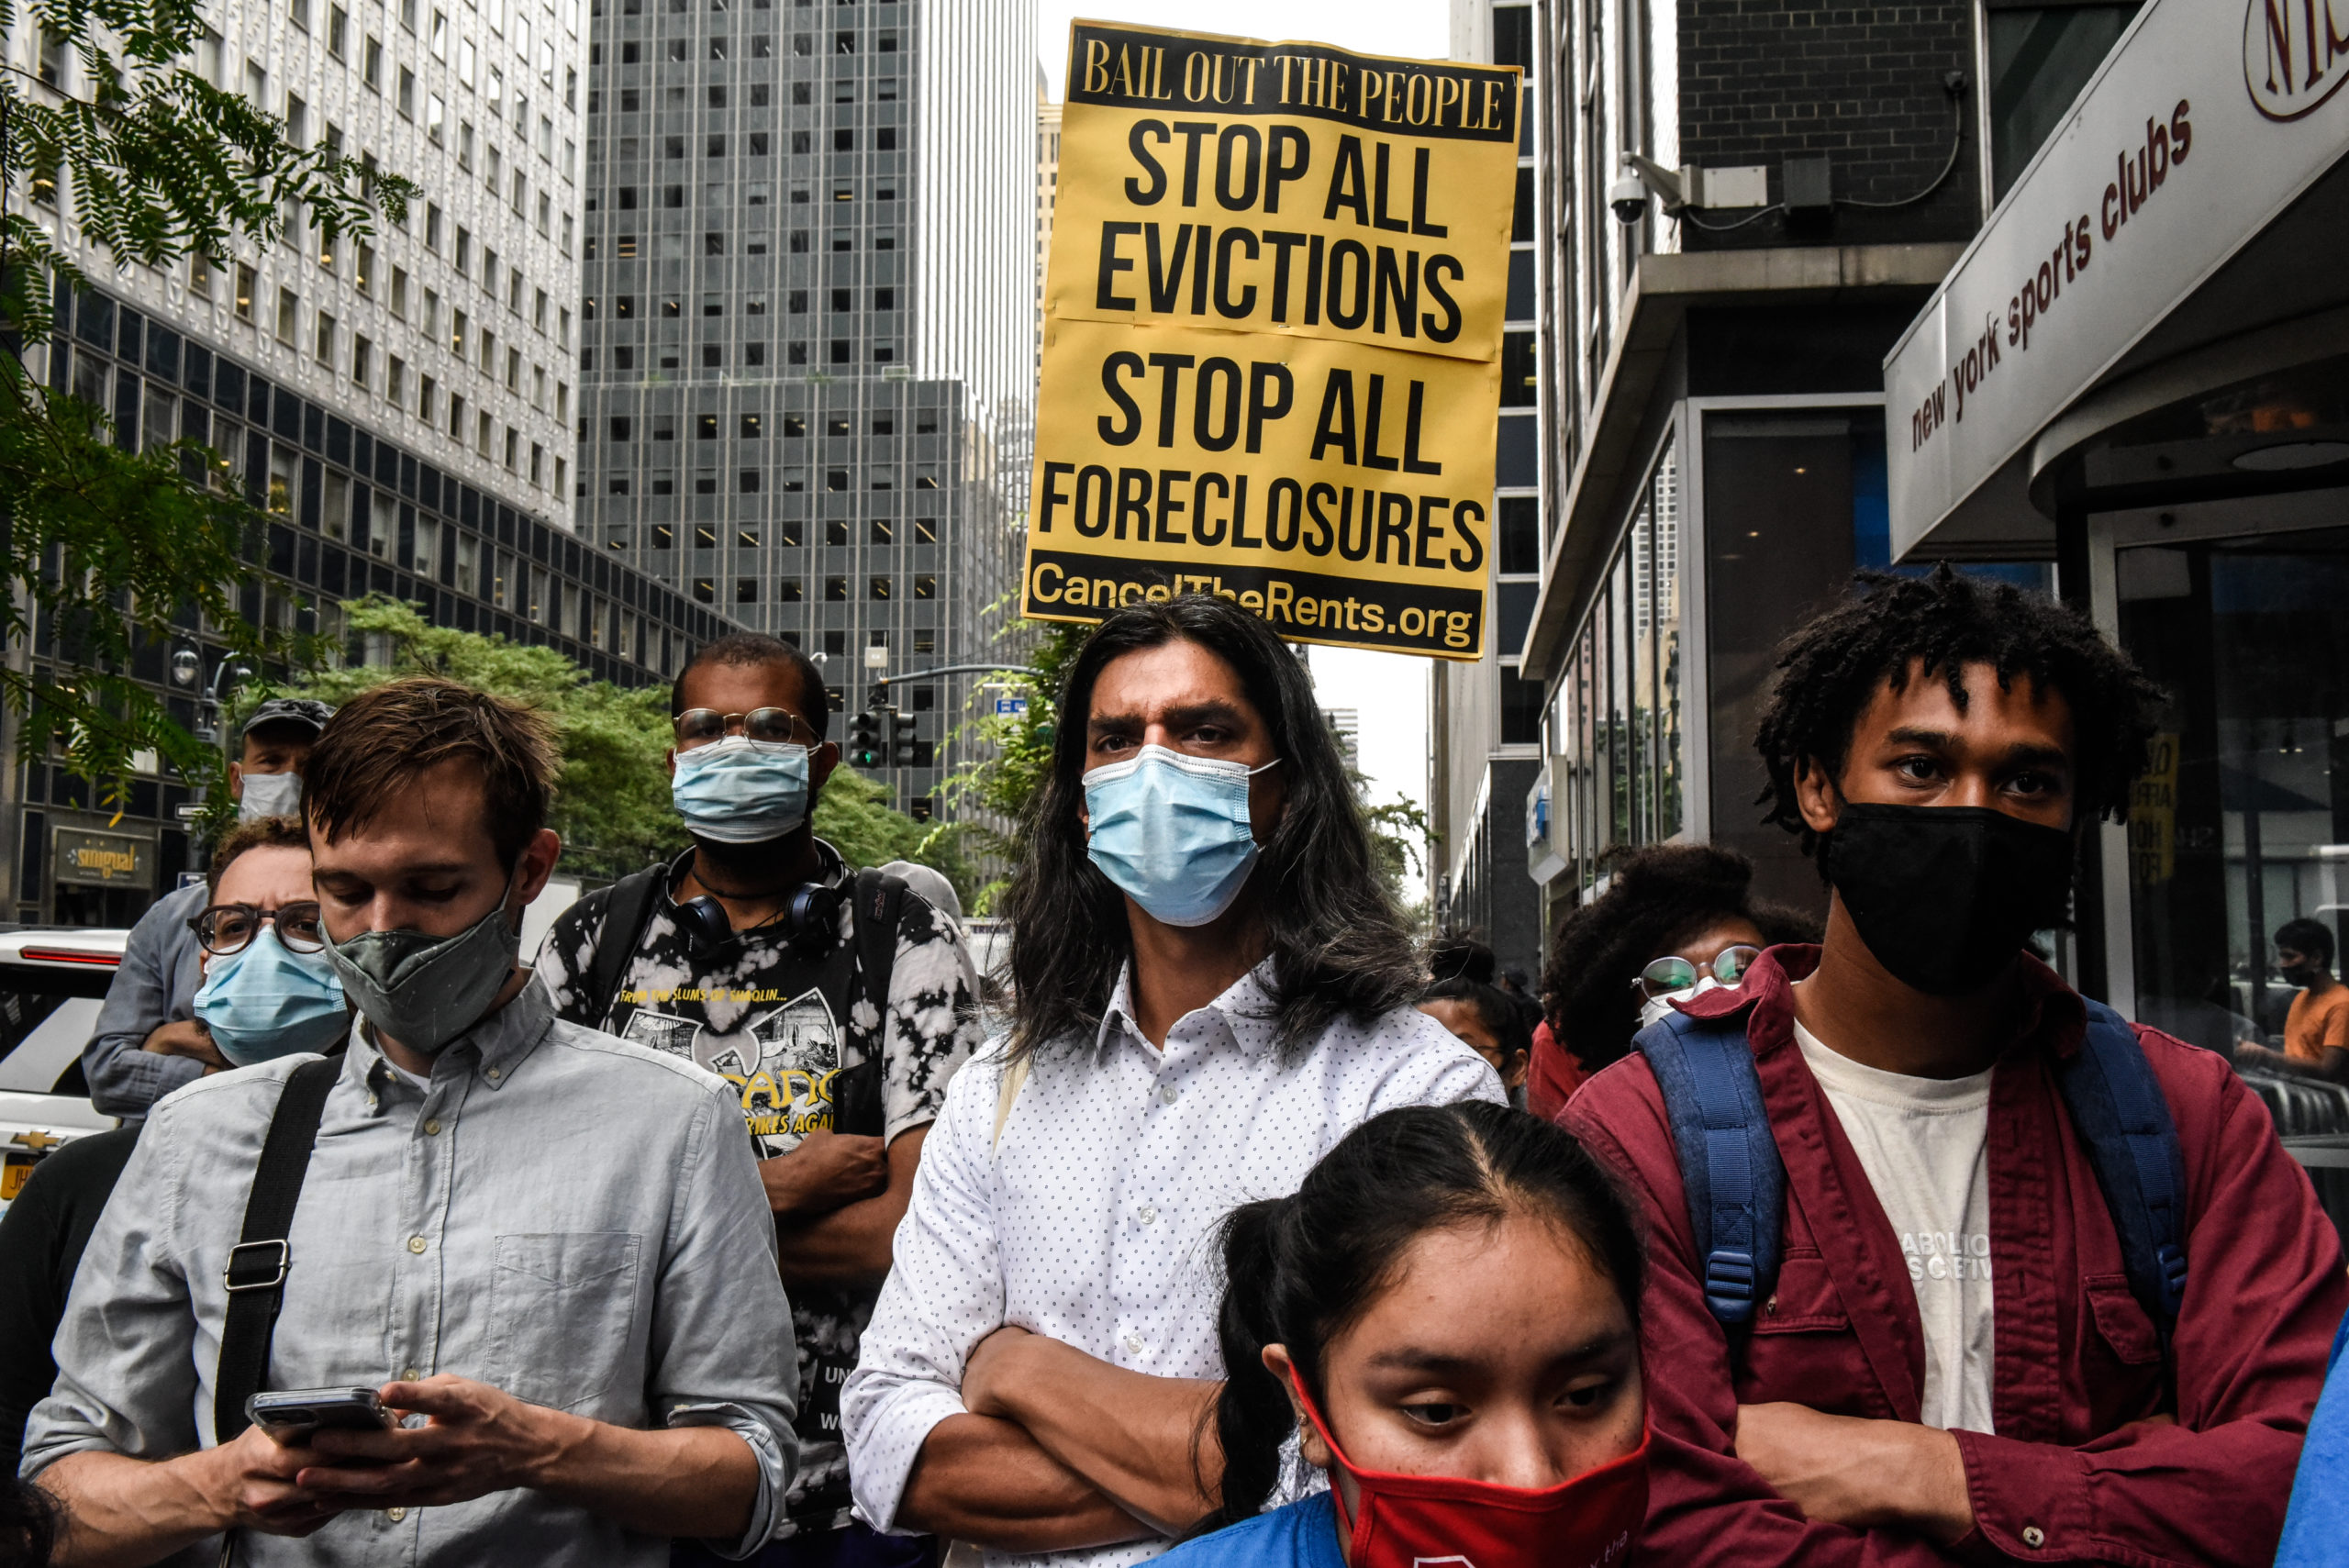 People participate in a protest for a moratorium on evictions on Wednesday in New York City. (Stephanie Keith/Getty Images)